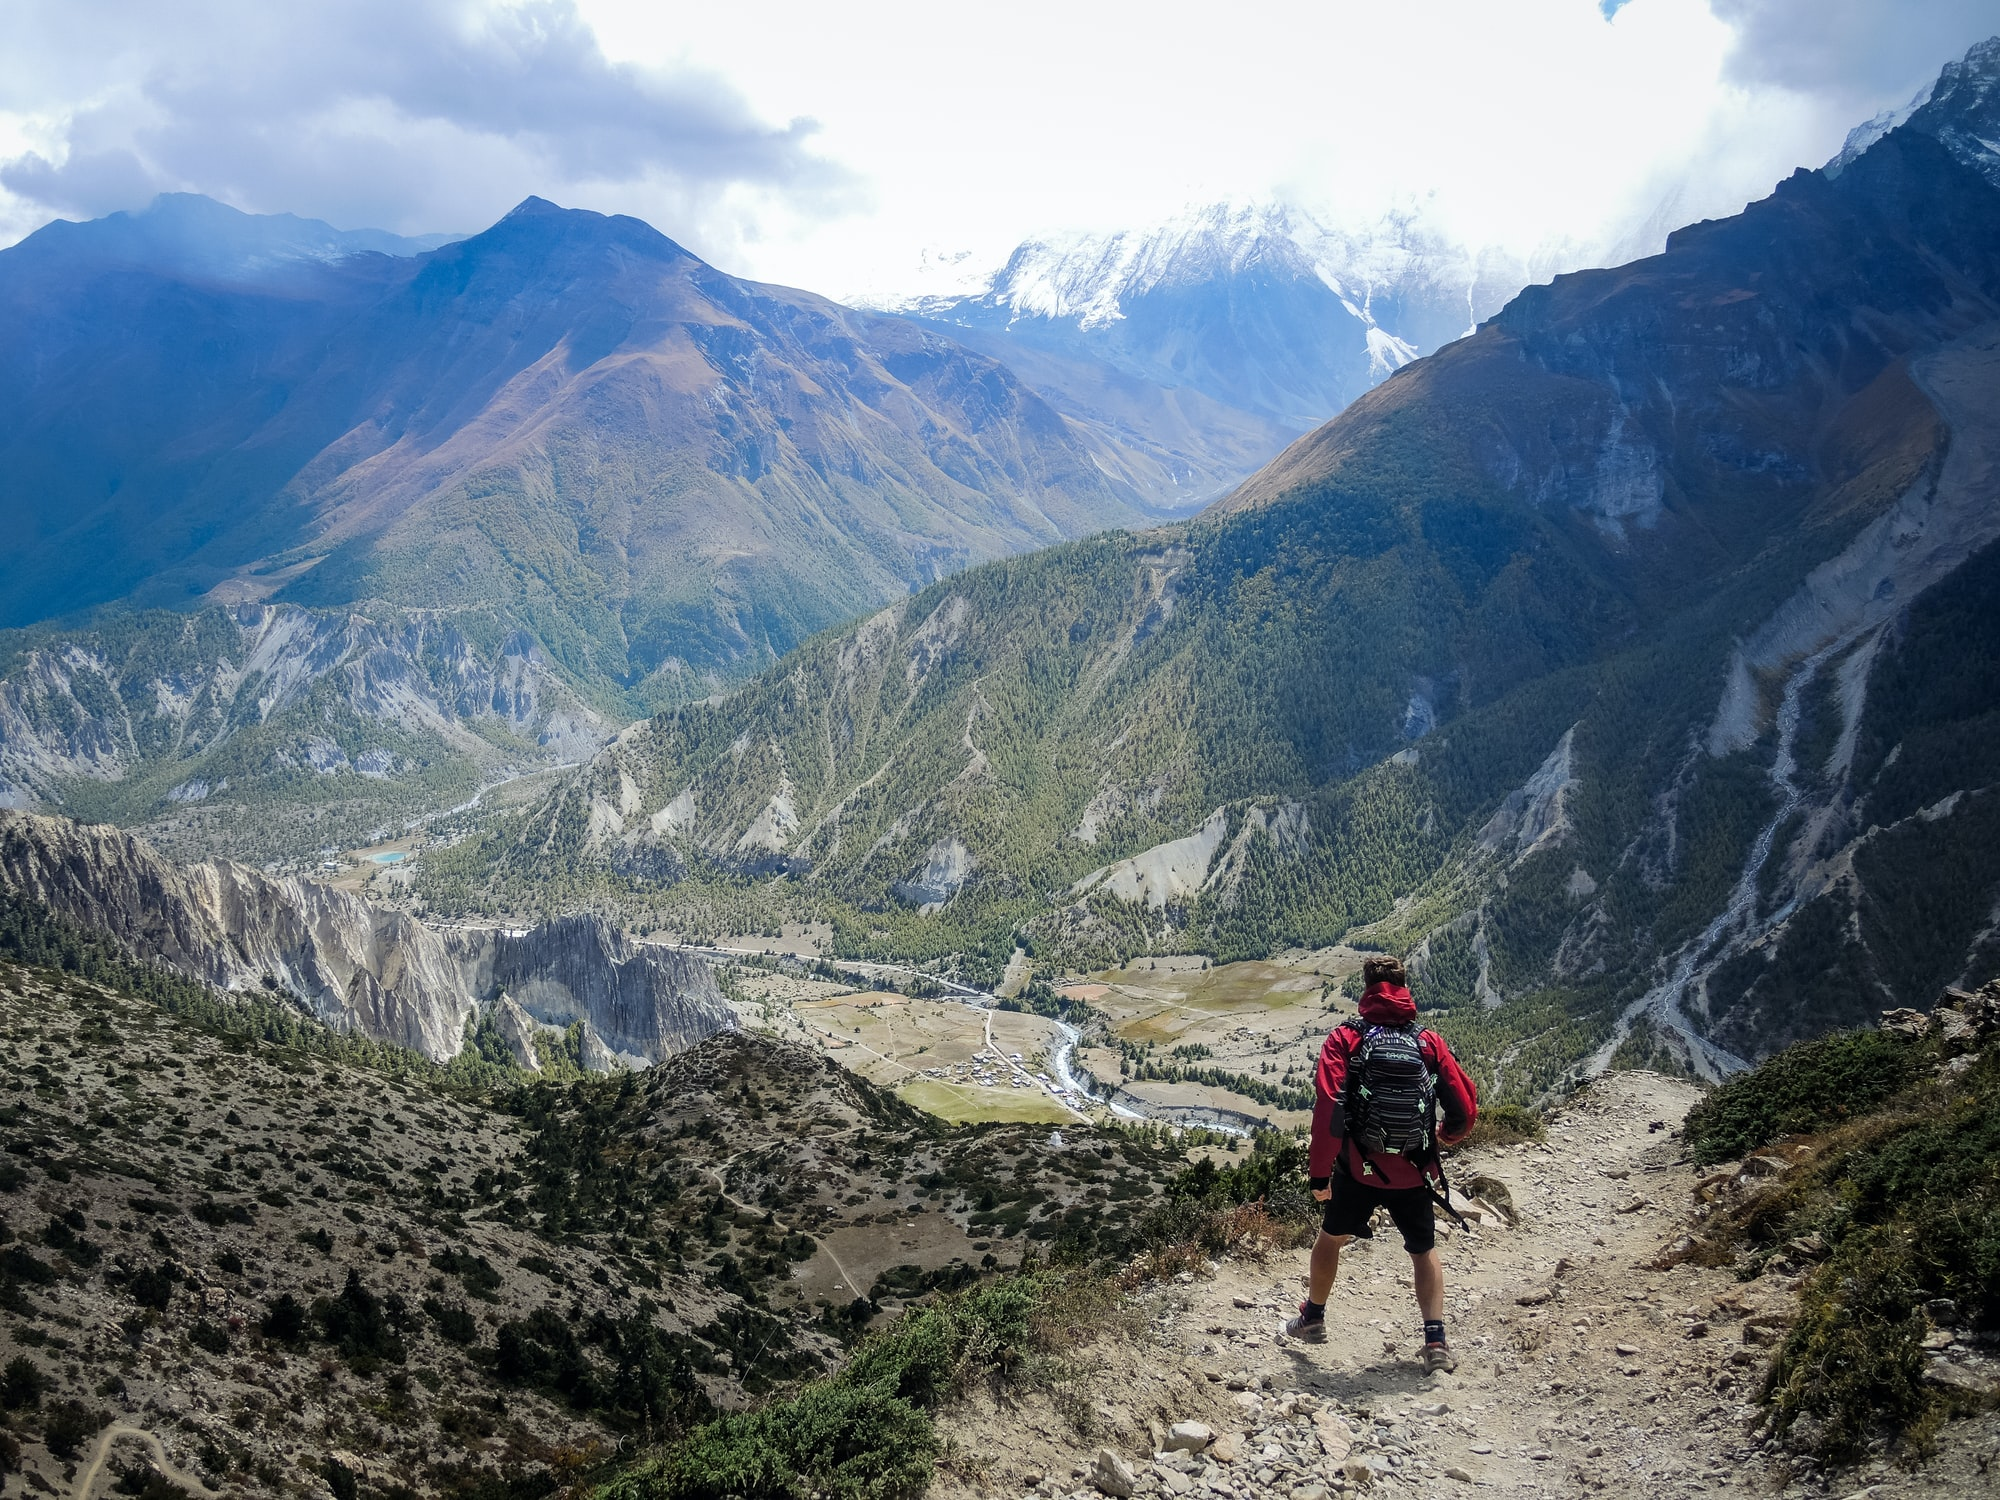 A day hike up from Manang for acclimatisation prior to tackling the Thorung La Pass on the Annapurna Circuit, Nepal.